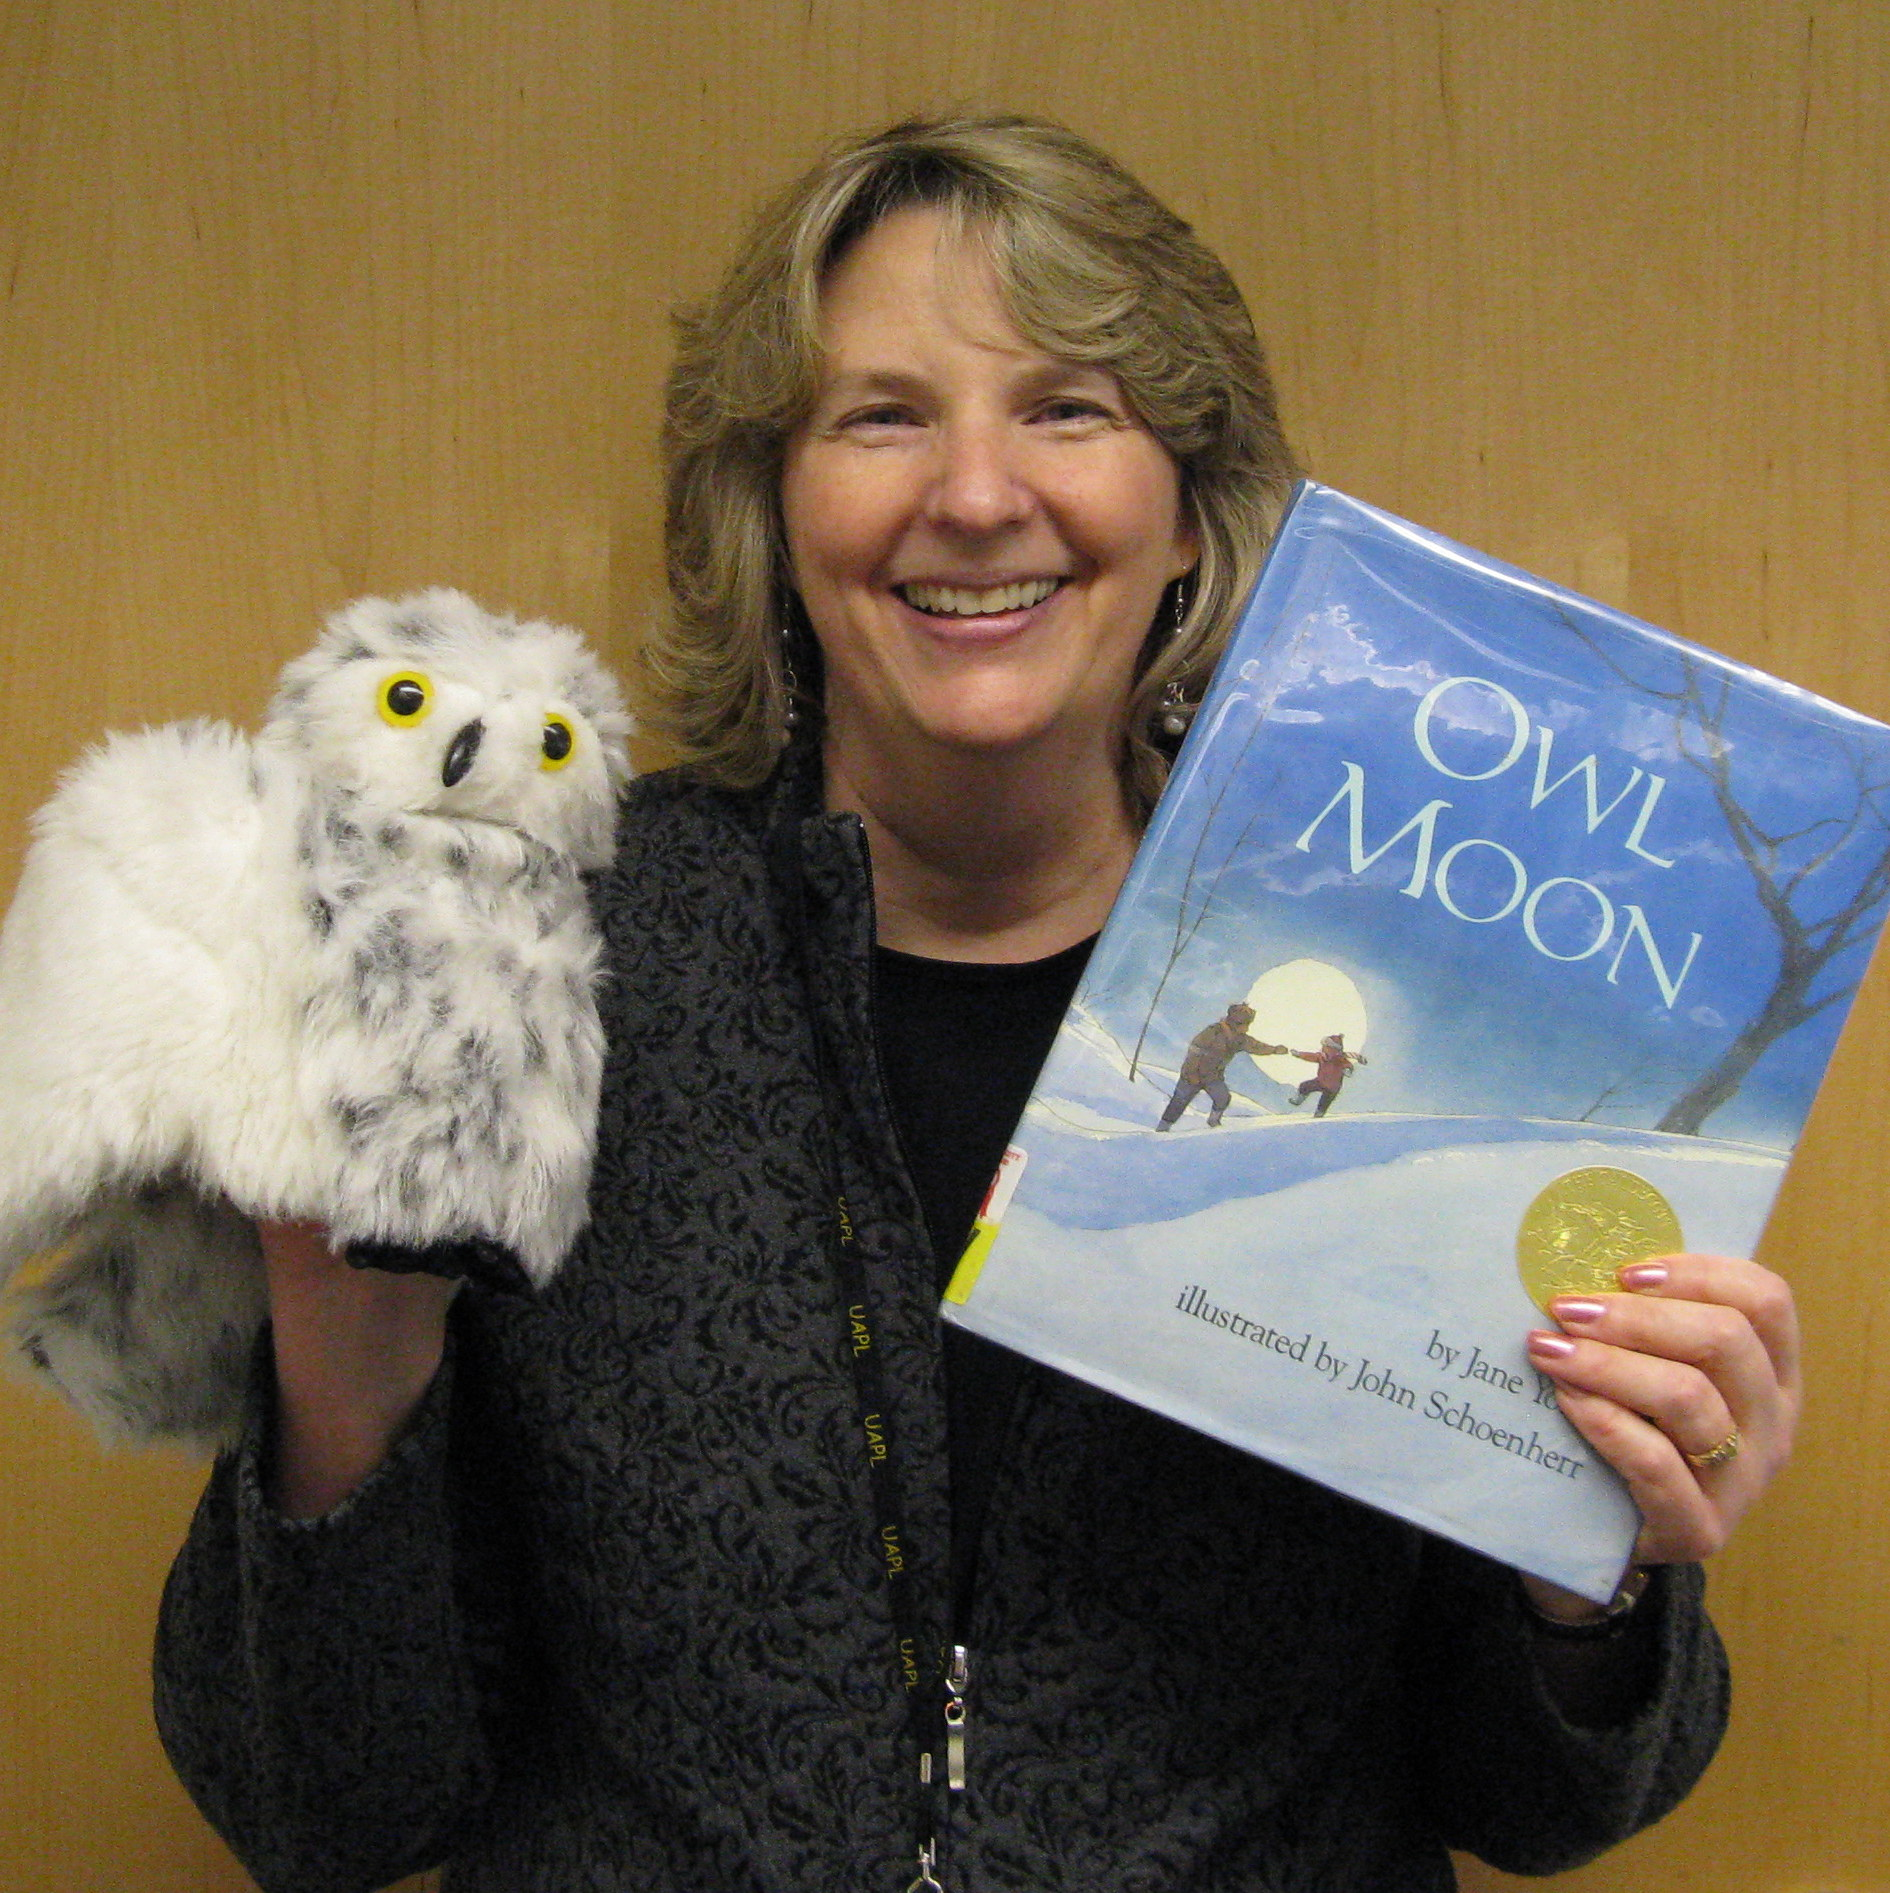 Photo of Kris holding the book Owl Moon and an owl puppet